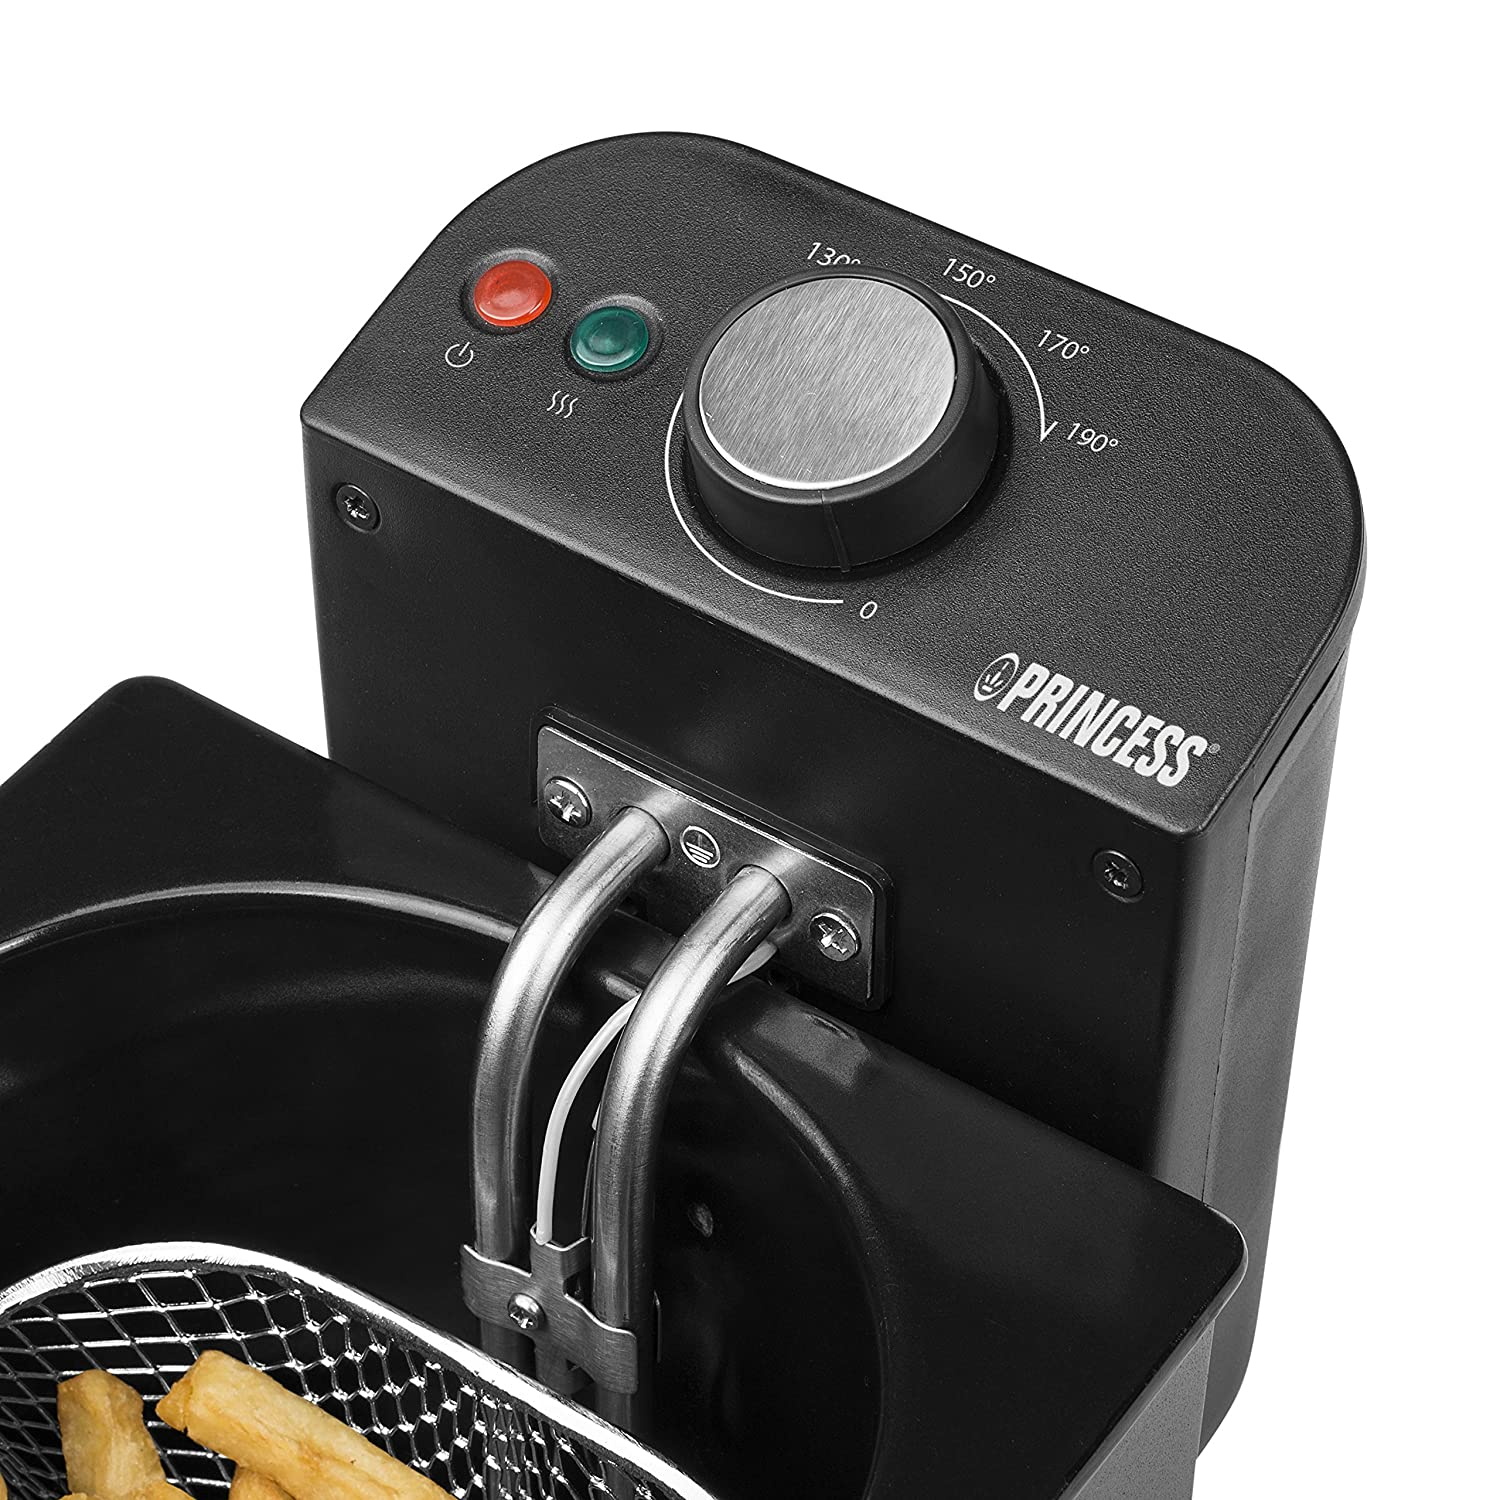 Princess 182725 Deep Fat Fryer - Freidora, zona fría, volumen de 2 litros, color negro: Amazon.es: Hogar